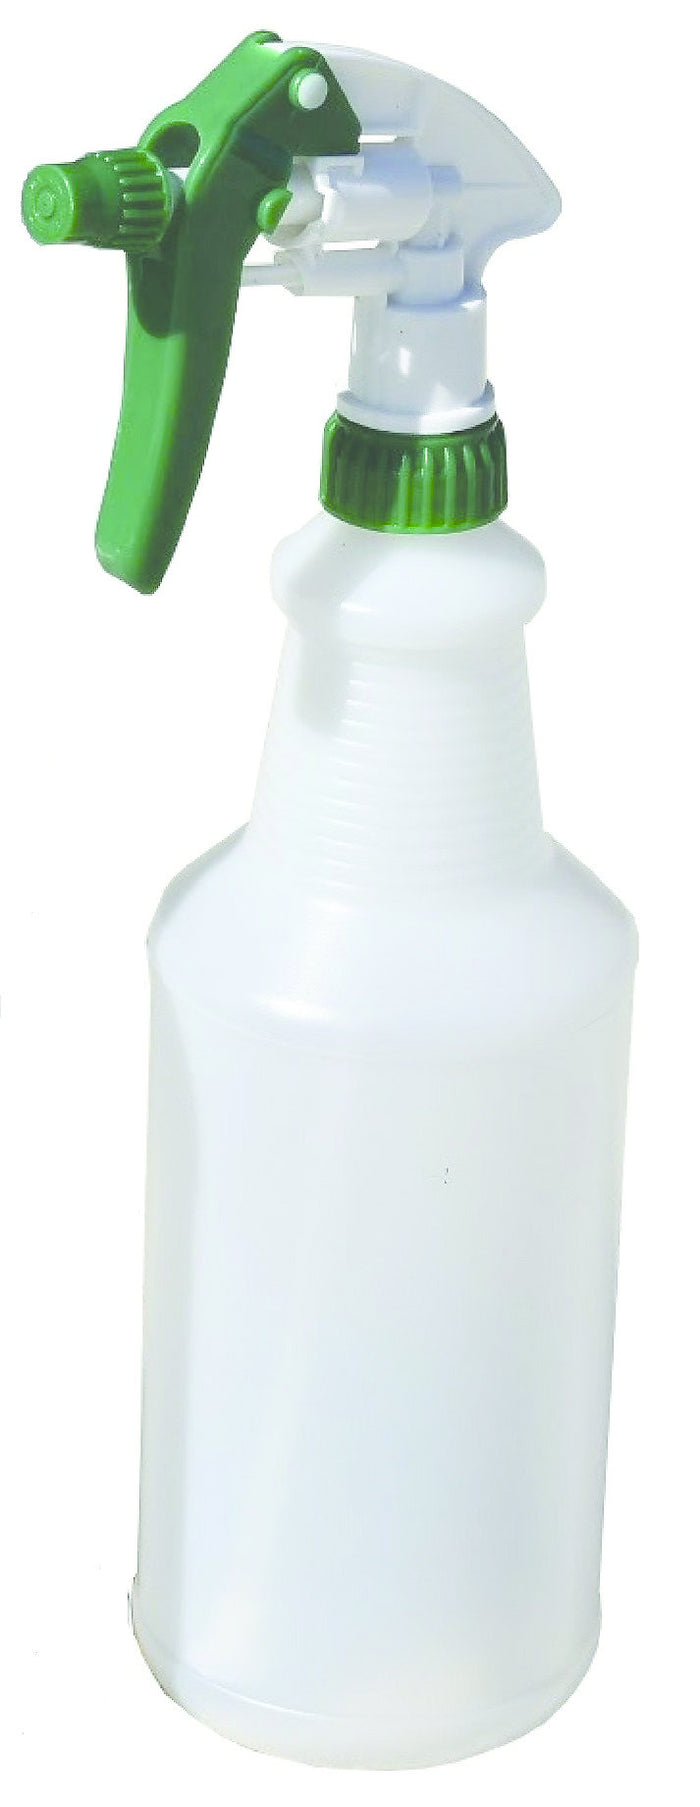 "32oz Sprayer Set - Green HD Trigger with 9.25"" Tube"